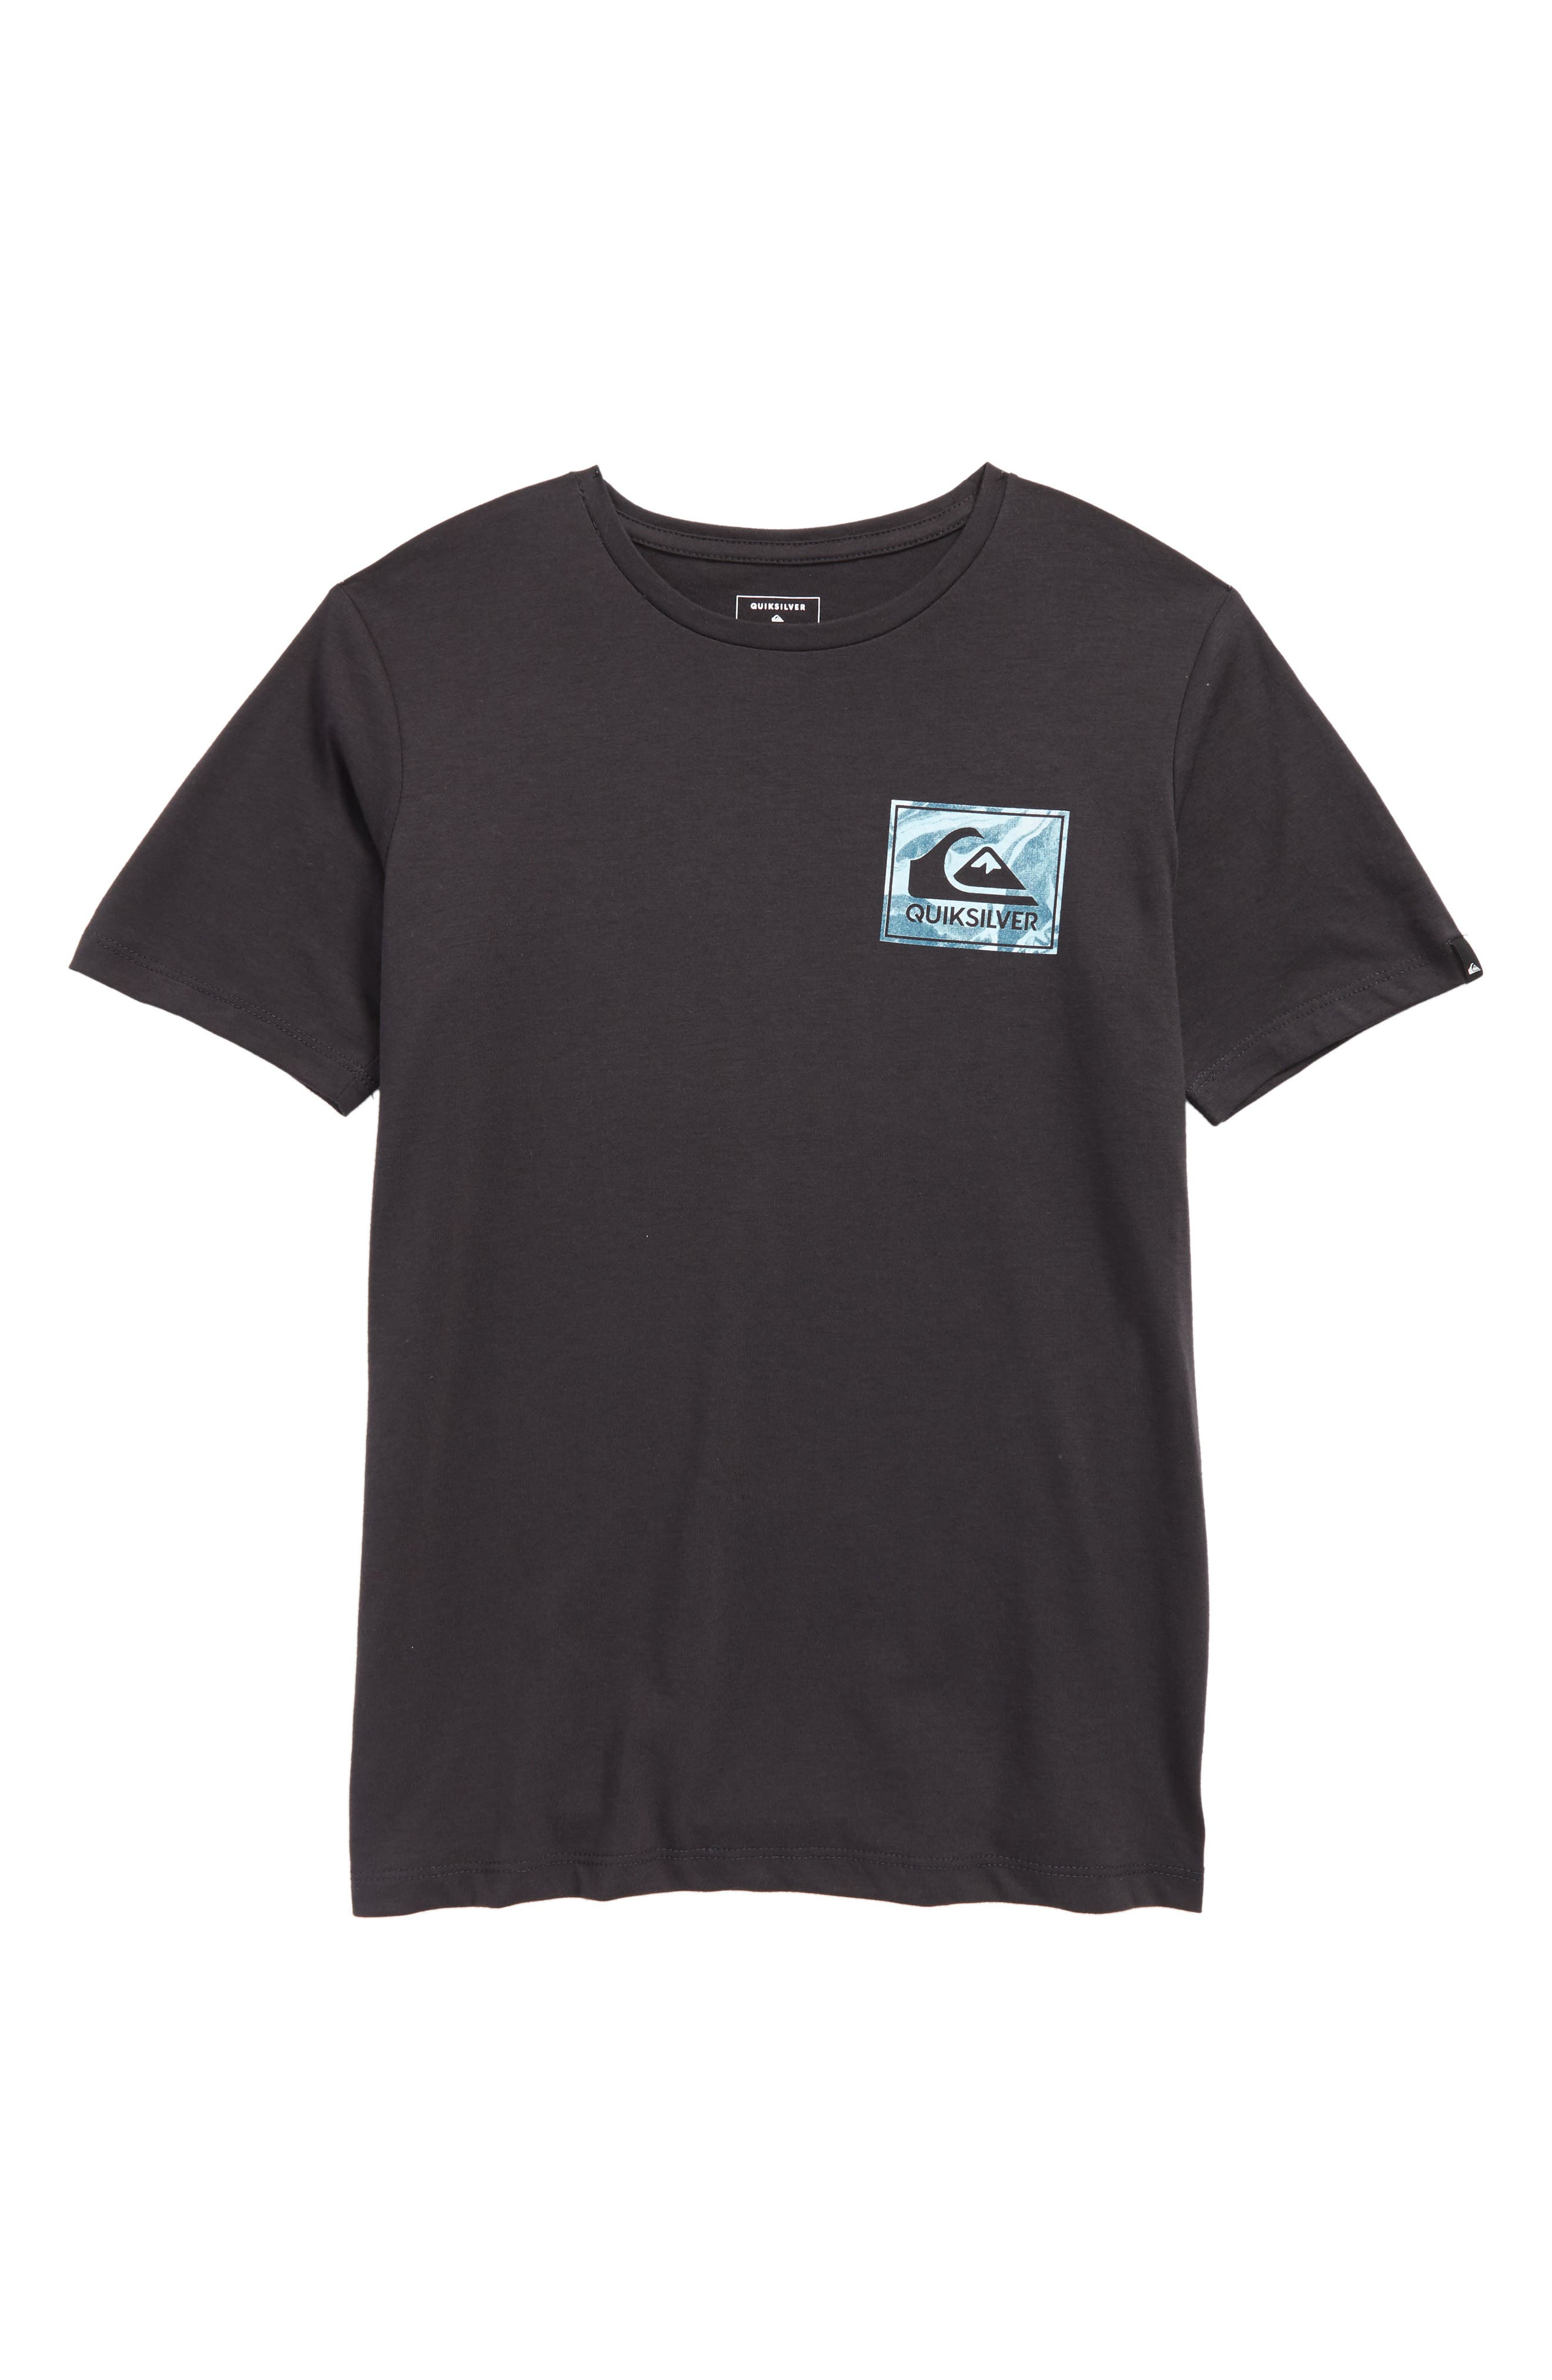 Volcano Blues T-Shirt,                         Main,                         color, Tarmac